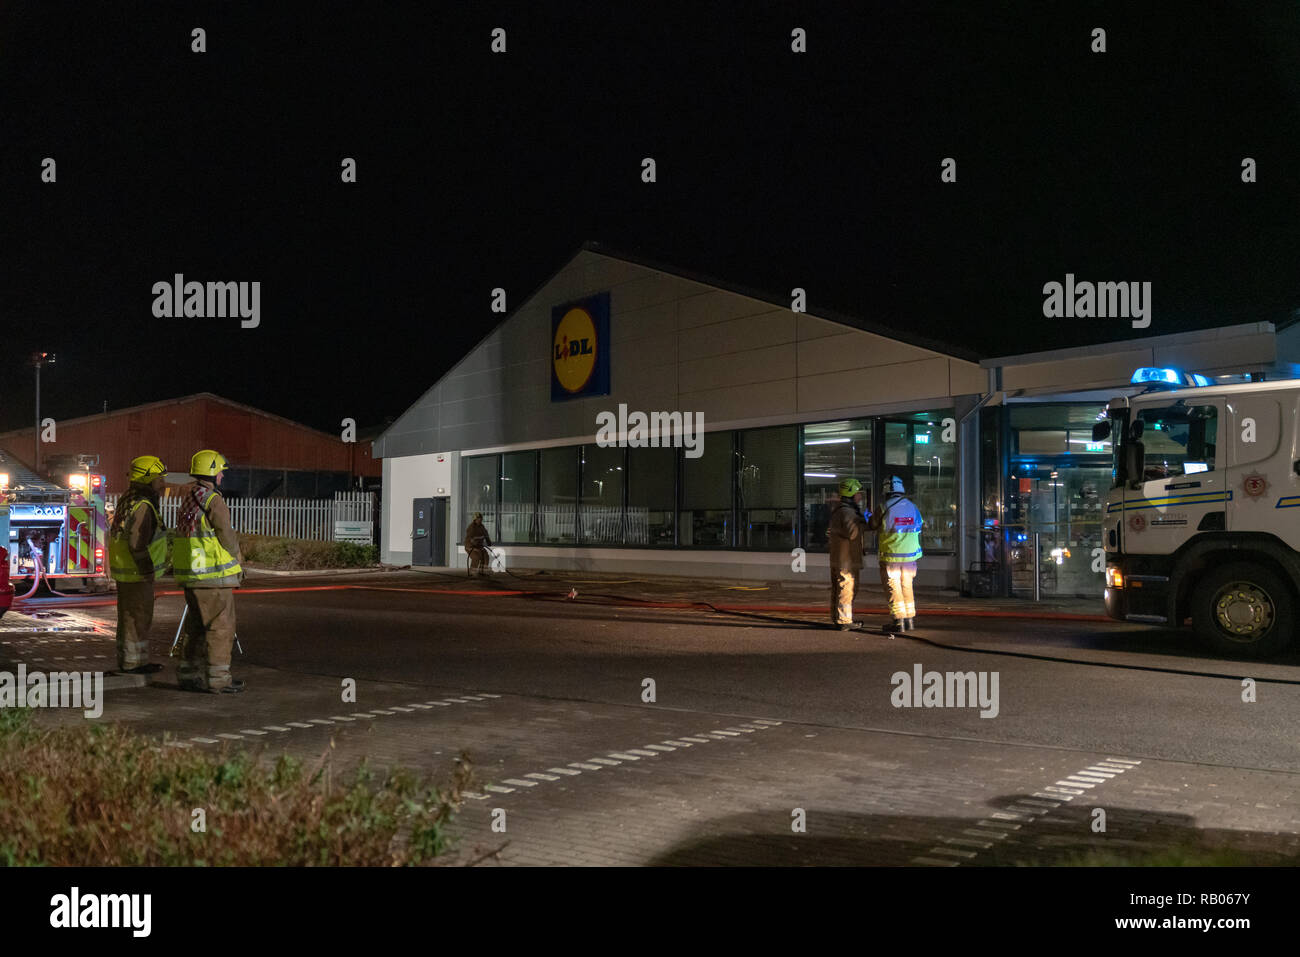 UK. 5th January 2019. This is the premises of Lidl, 18 West Road, Forres, IV36 2GW which had to be evacuated due to a fire within the premises. Photographed by JASPERIMAGE © - Stock Image